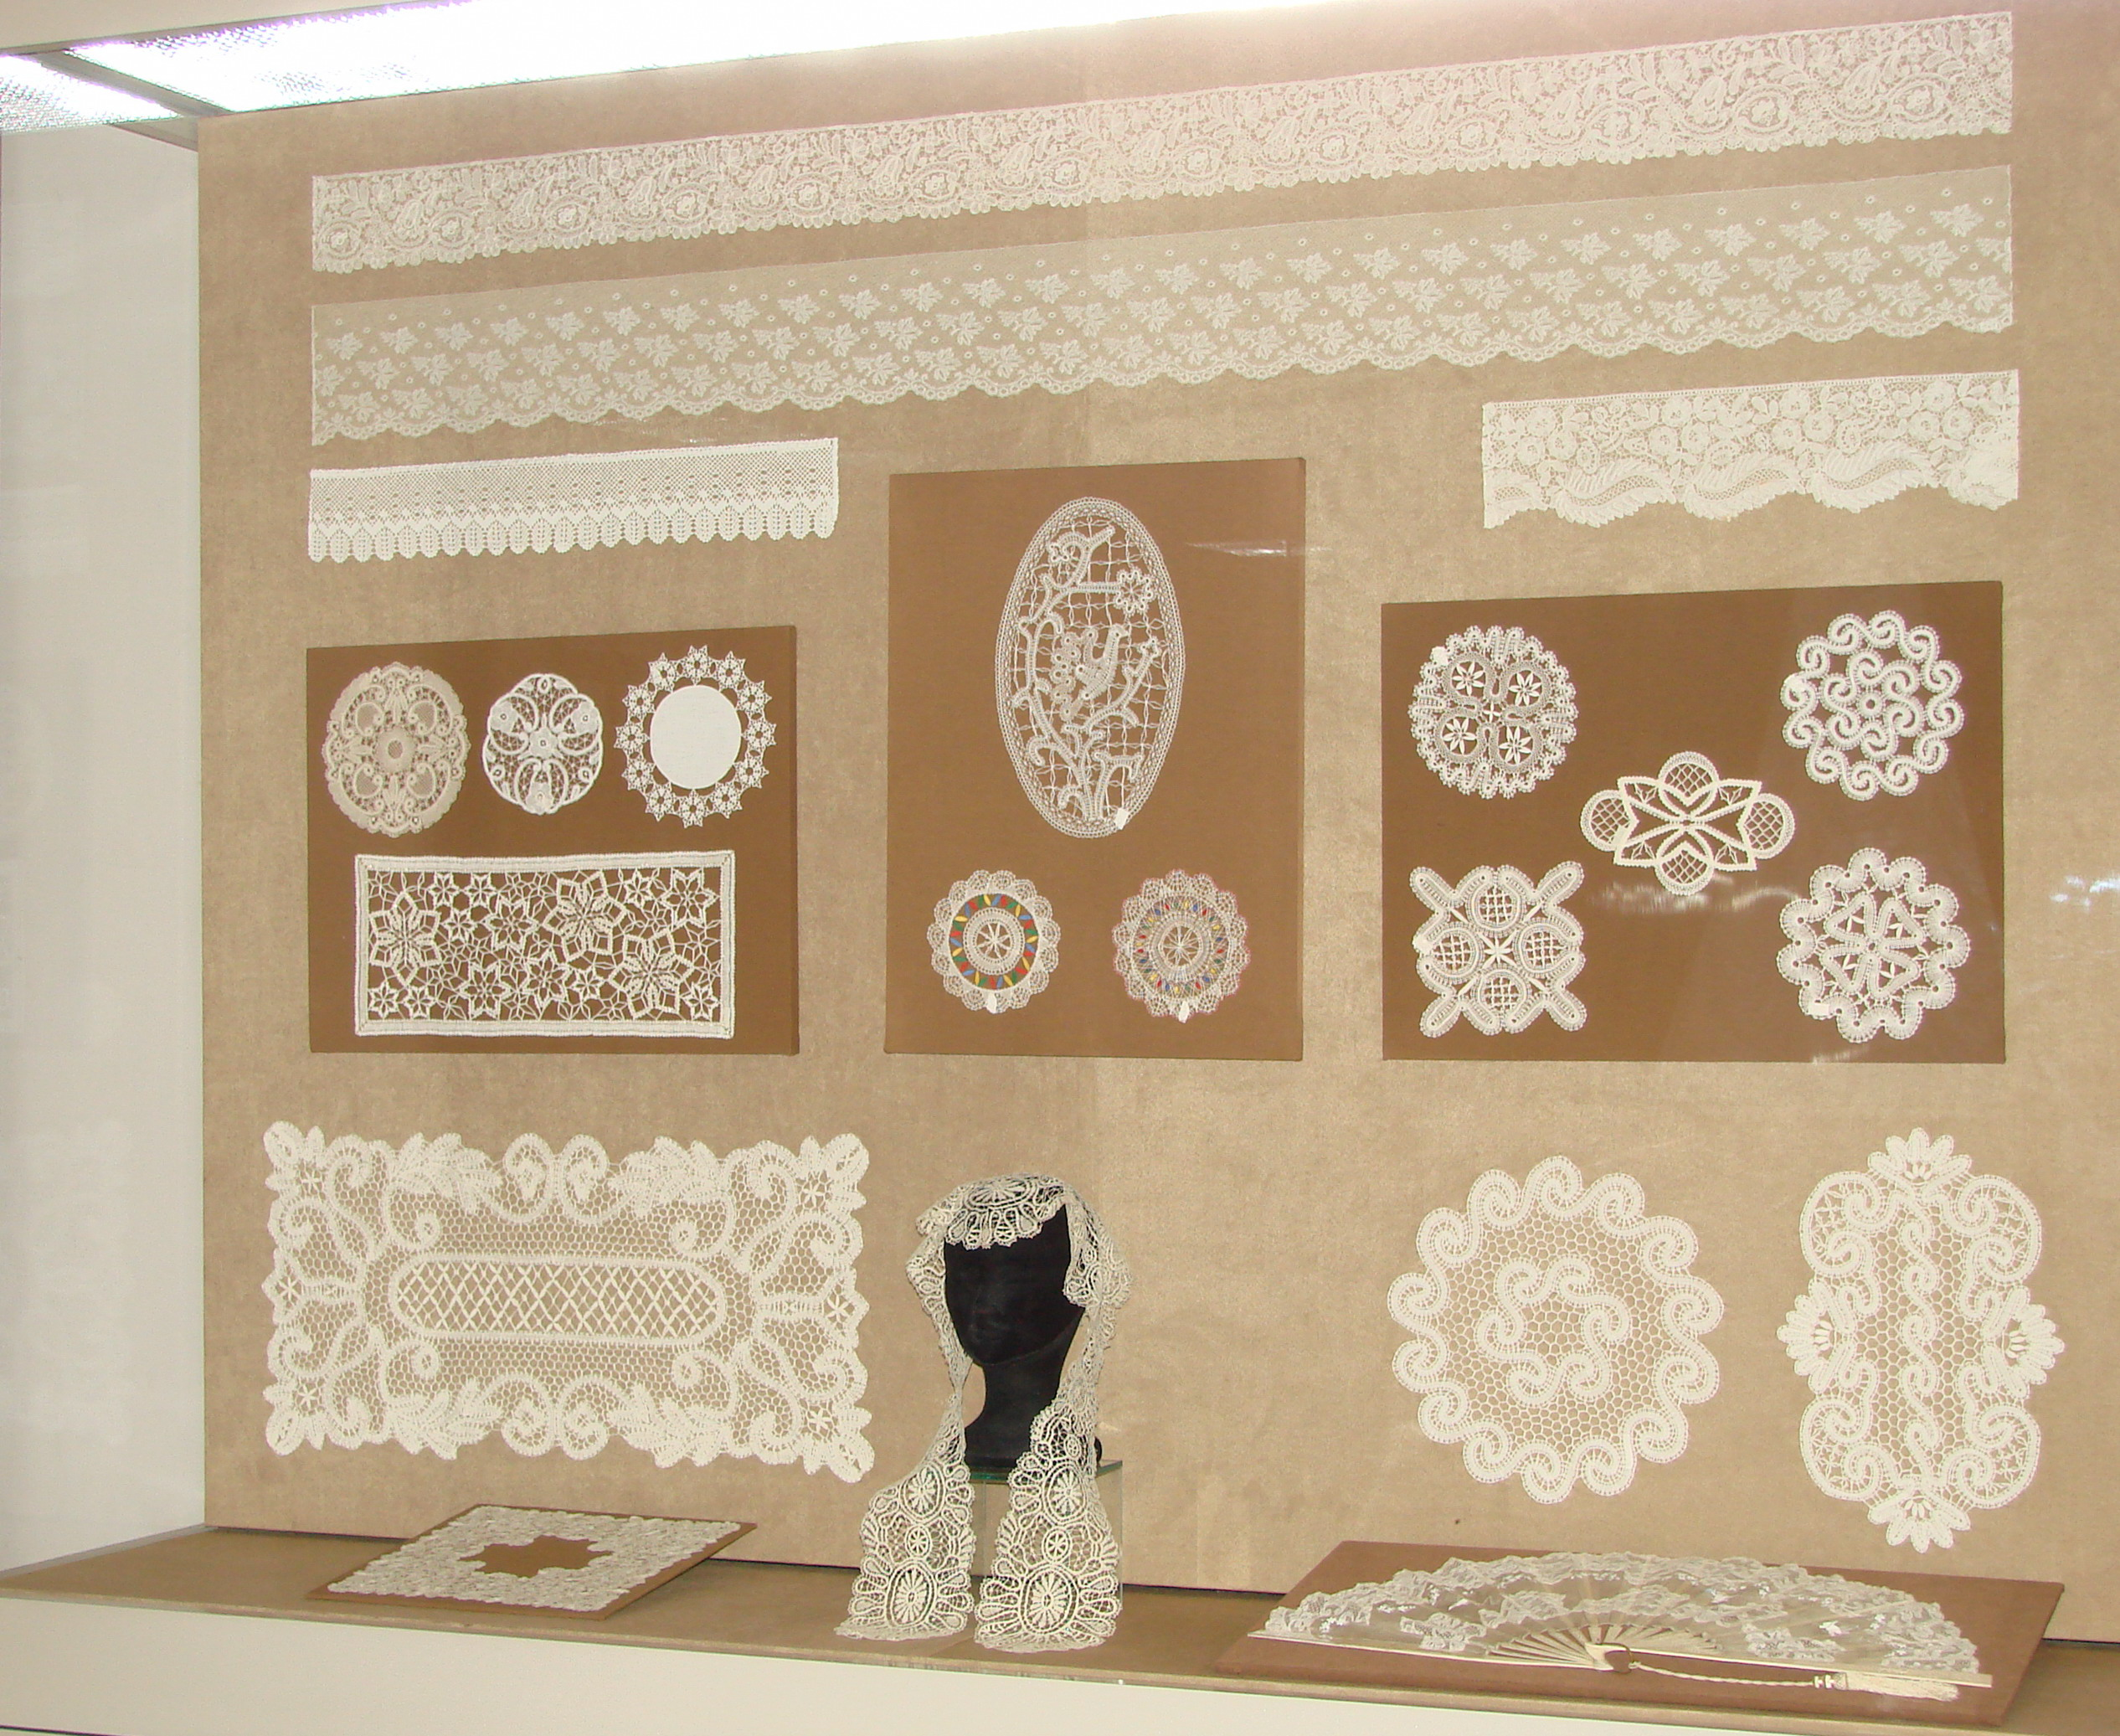 Vologda, Museum of lace 5